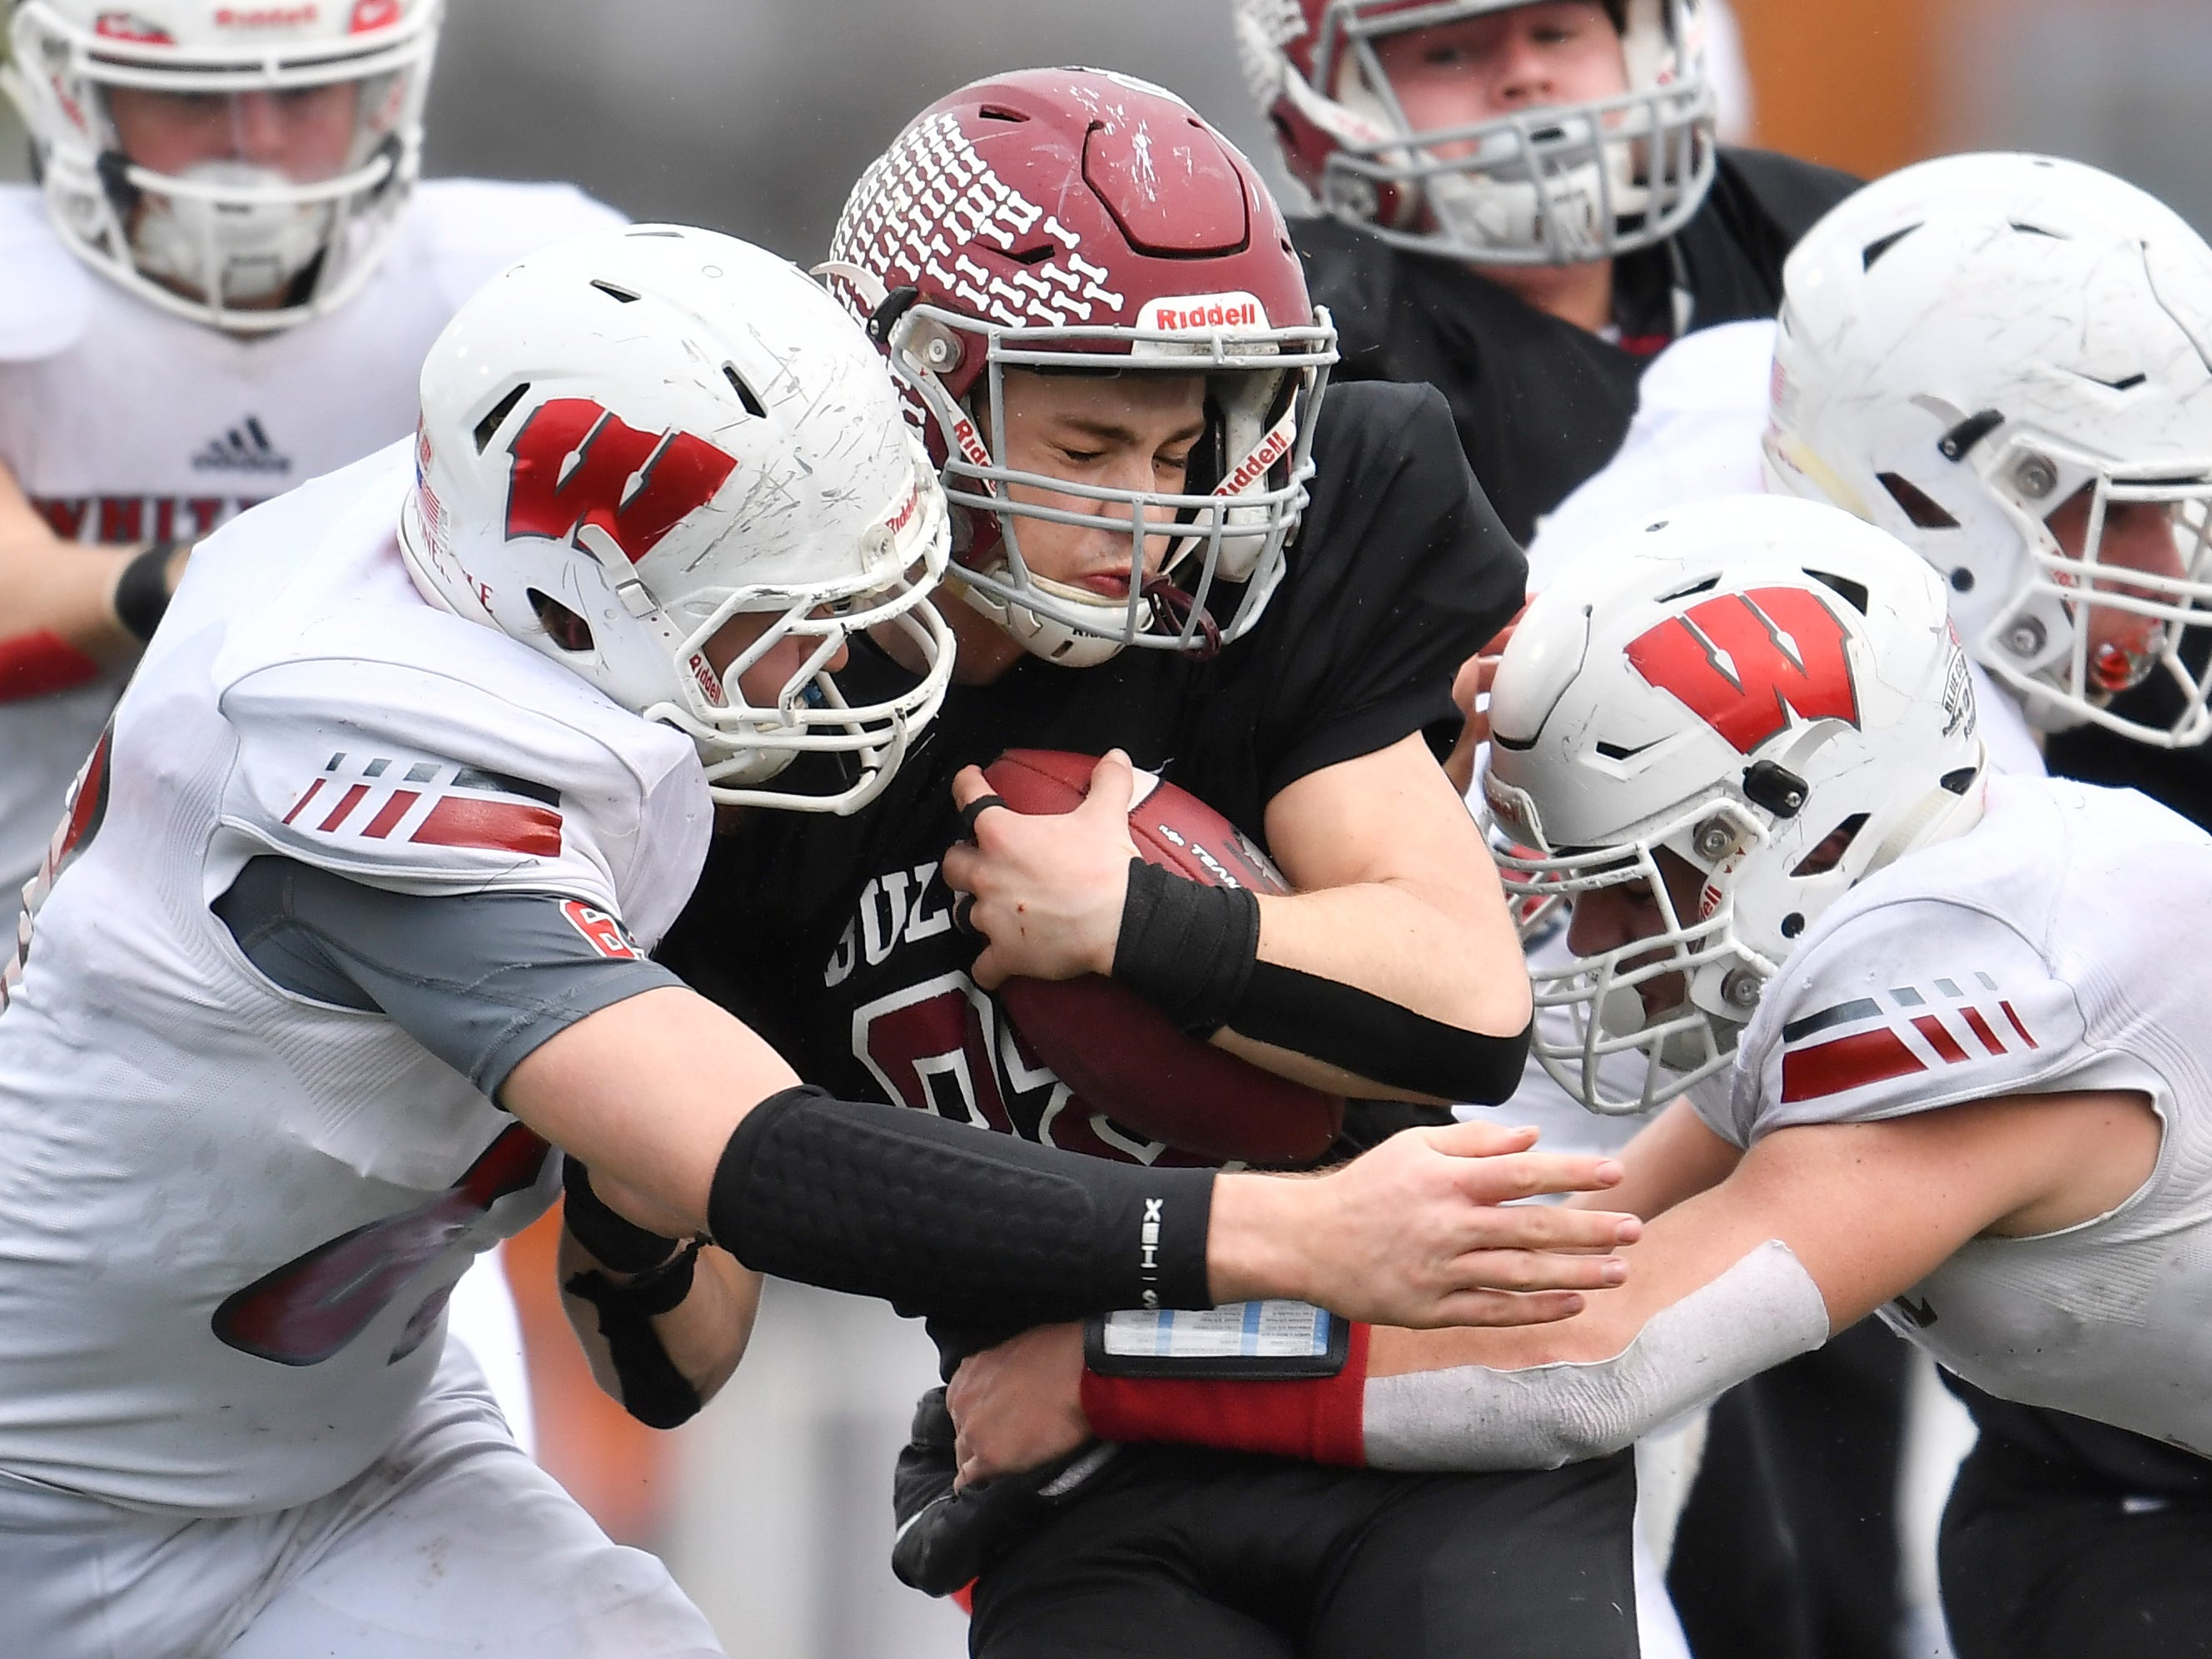 Cornersville's Eli Woodard (22) gets stopped by Whitwell defenders in the third quarter at the Class I-A BlueCross Bowl state championship at Tennessee Tech's Tucker Stadium in Cookeville, Tenn., on Saturday, Dec. 1, 2018.